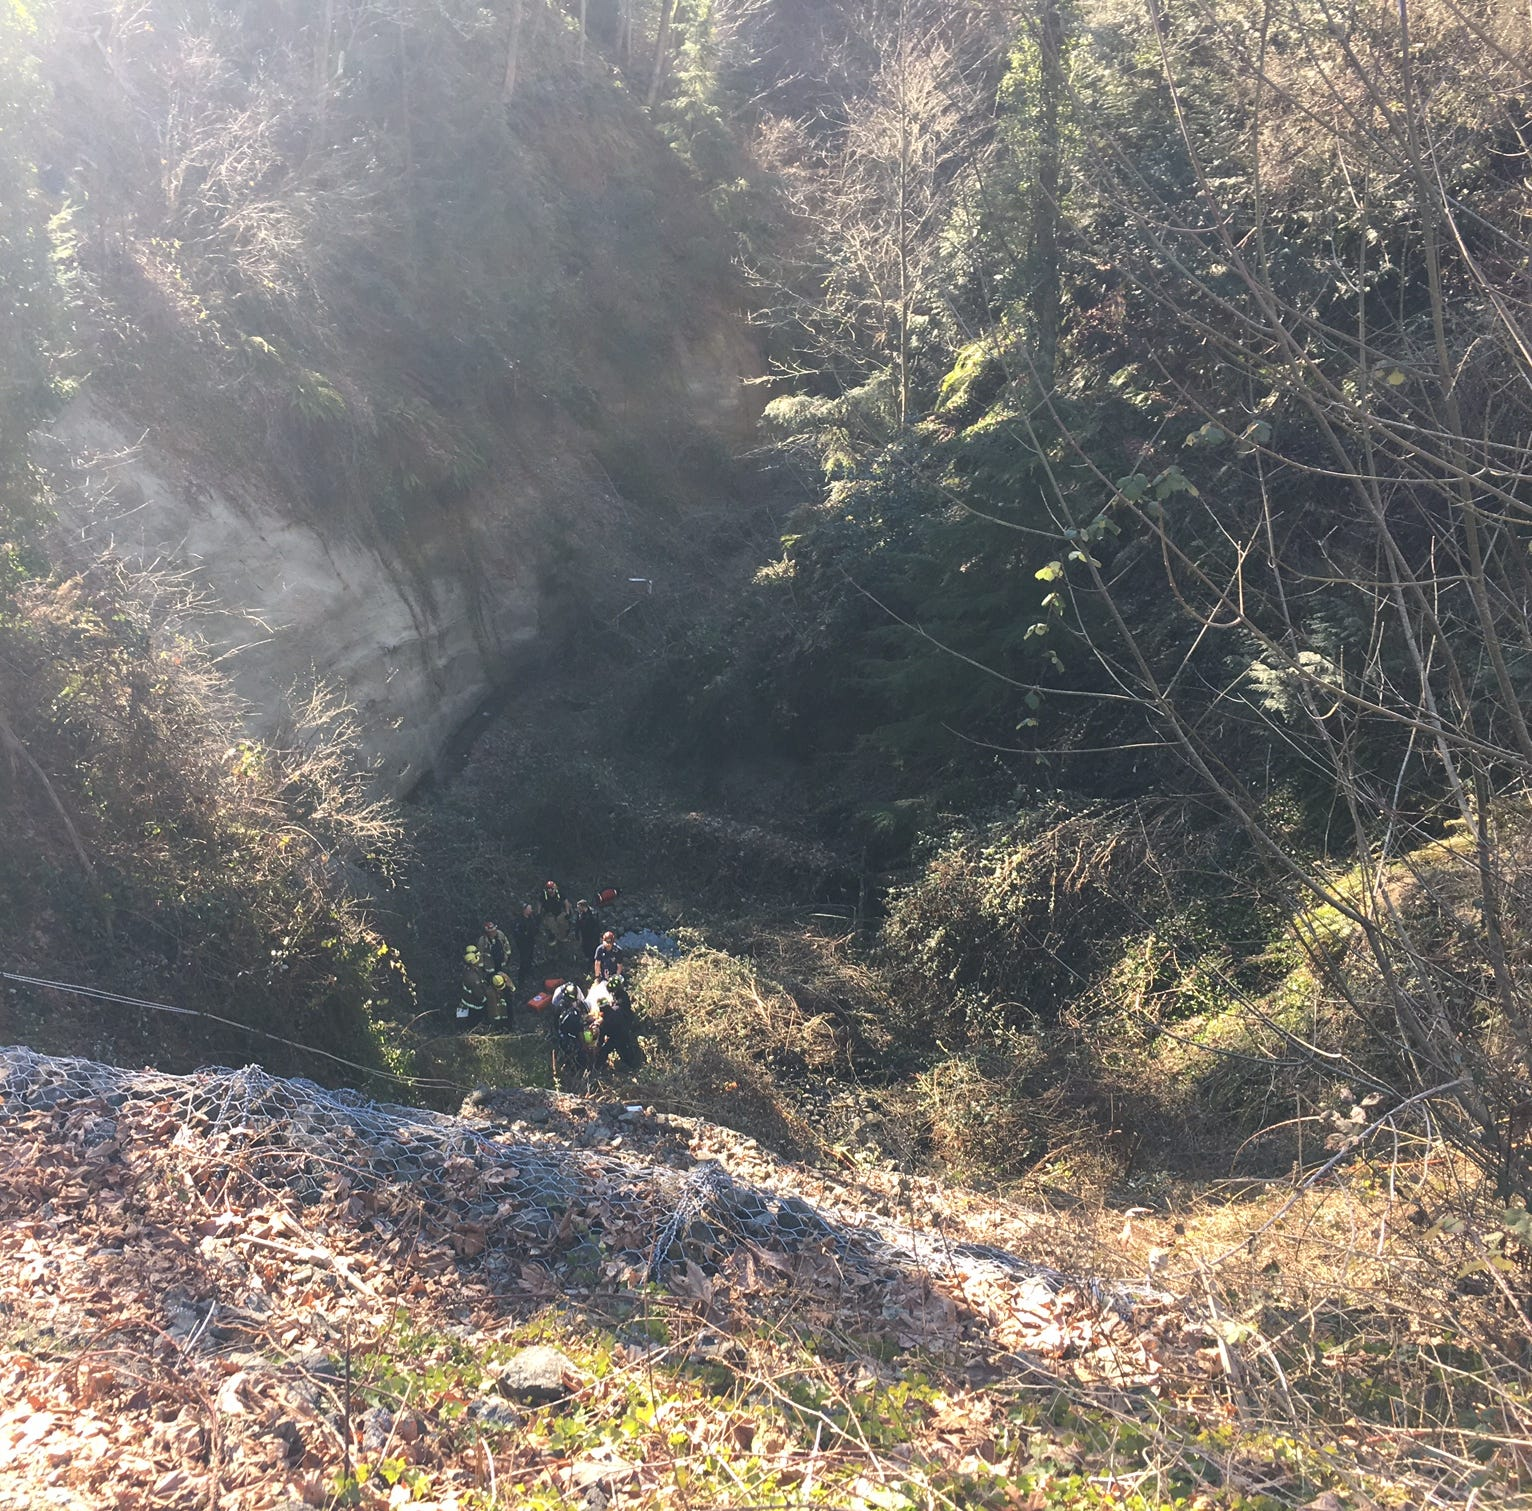 Crews rescue near-naked man from ravine in East Bremerton